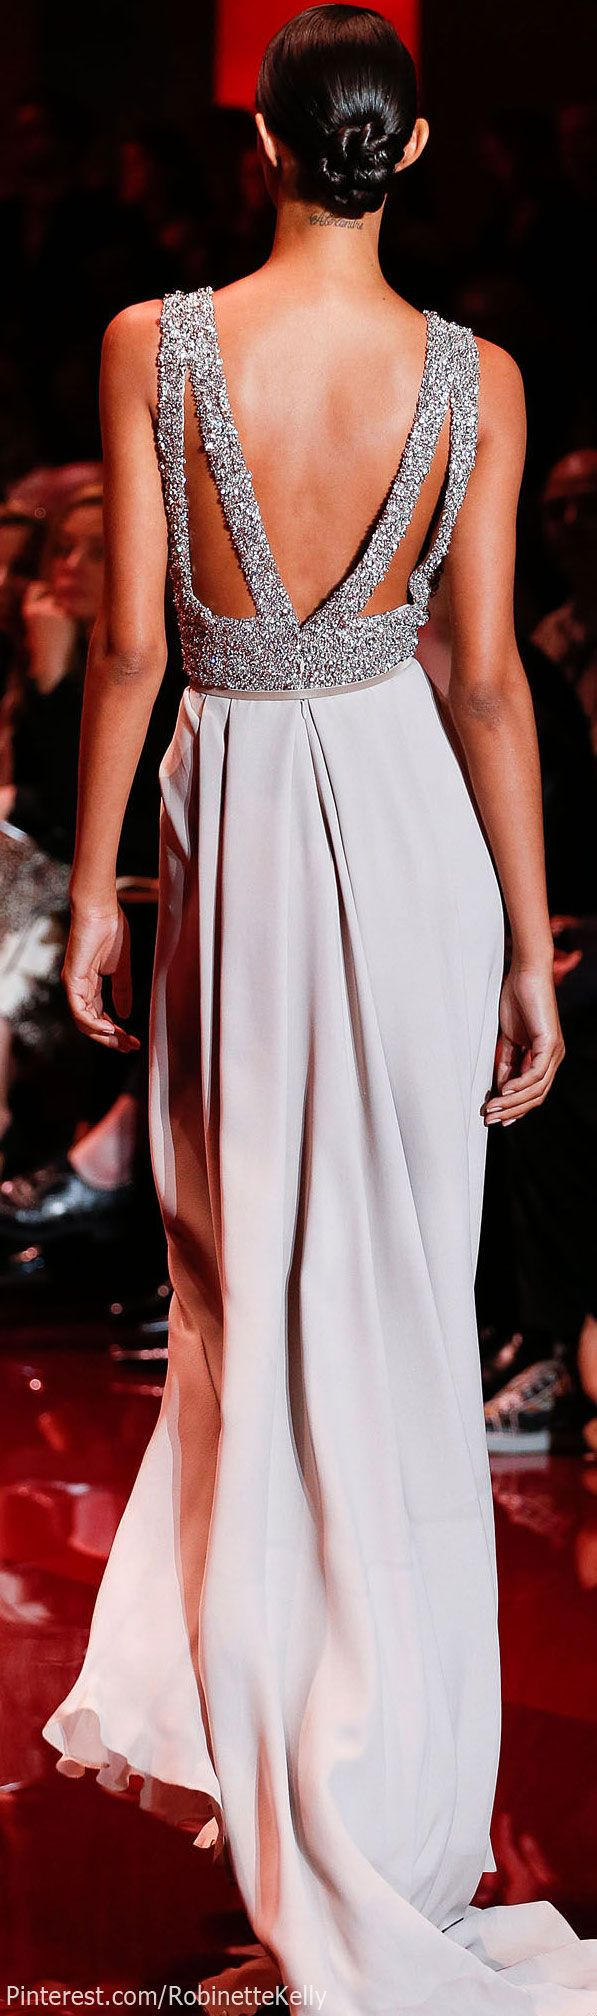 Elie Saab Haute Couture   F/W 2013 I like this...maybe too much for bridesmaids but I like the style.